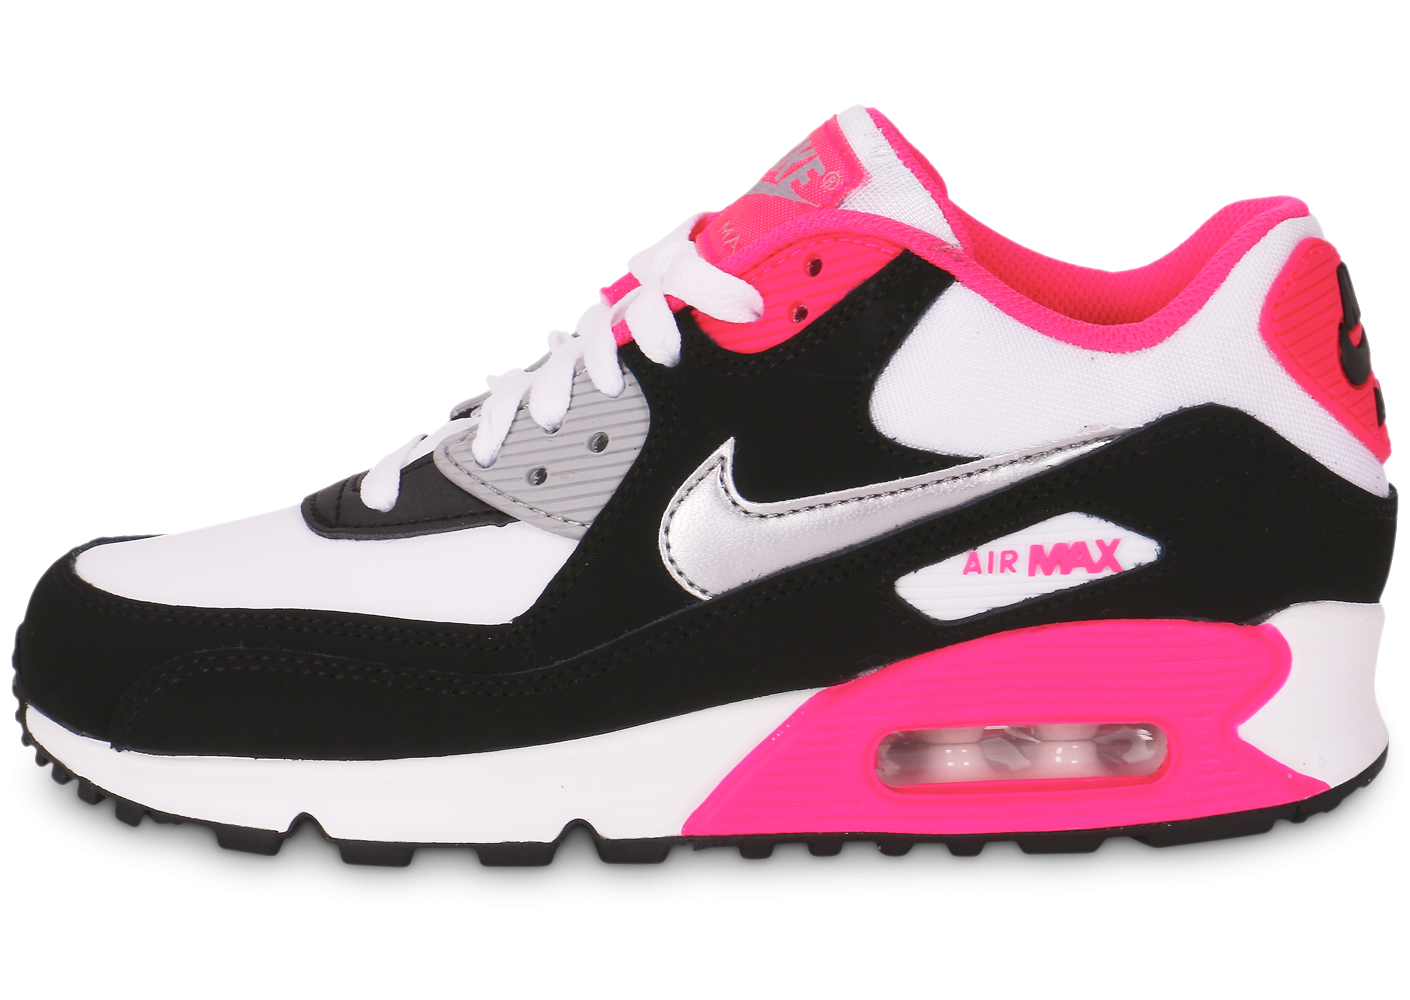 meilleur service c1203 44873 switzerland nike air max 90 hyperfuse rose noir 6bccb 23045